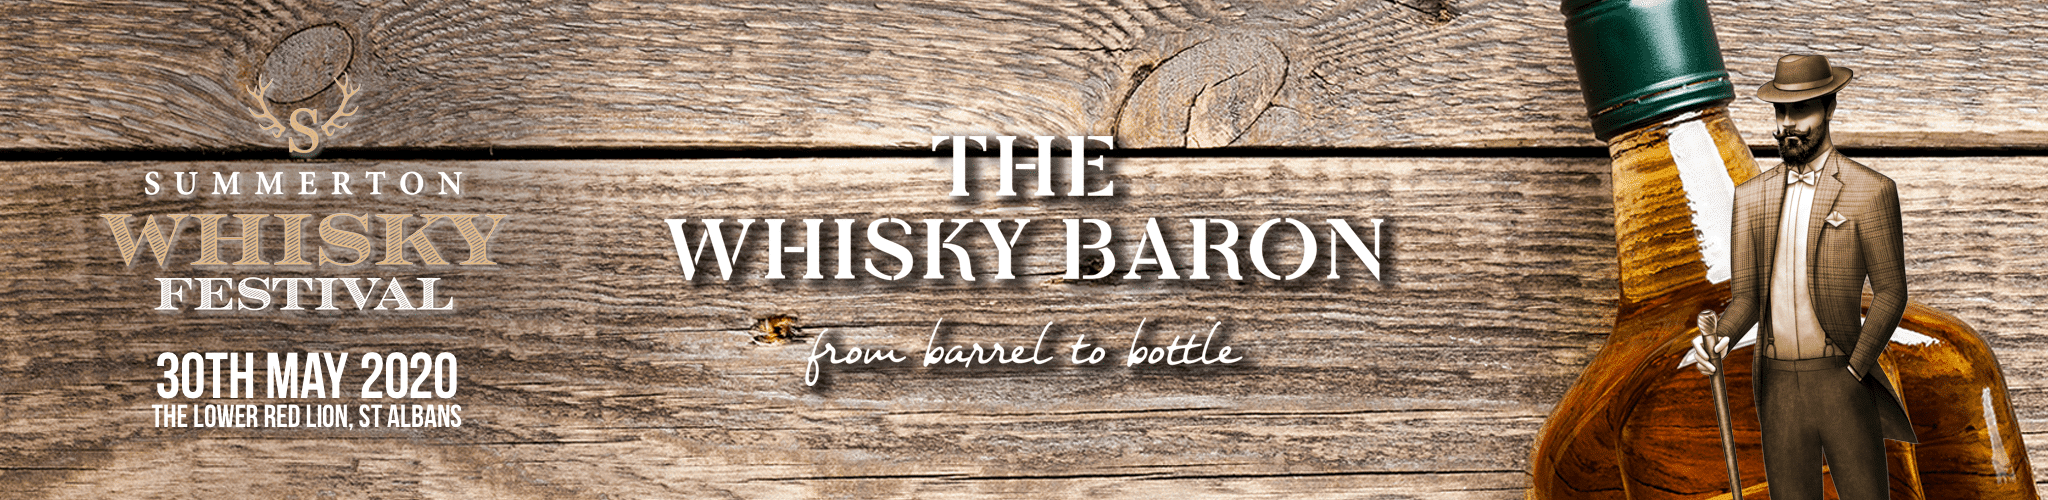 whiskybaron